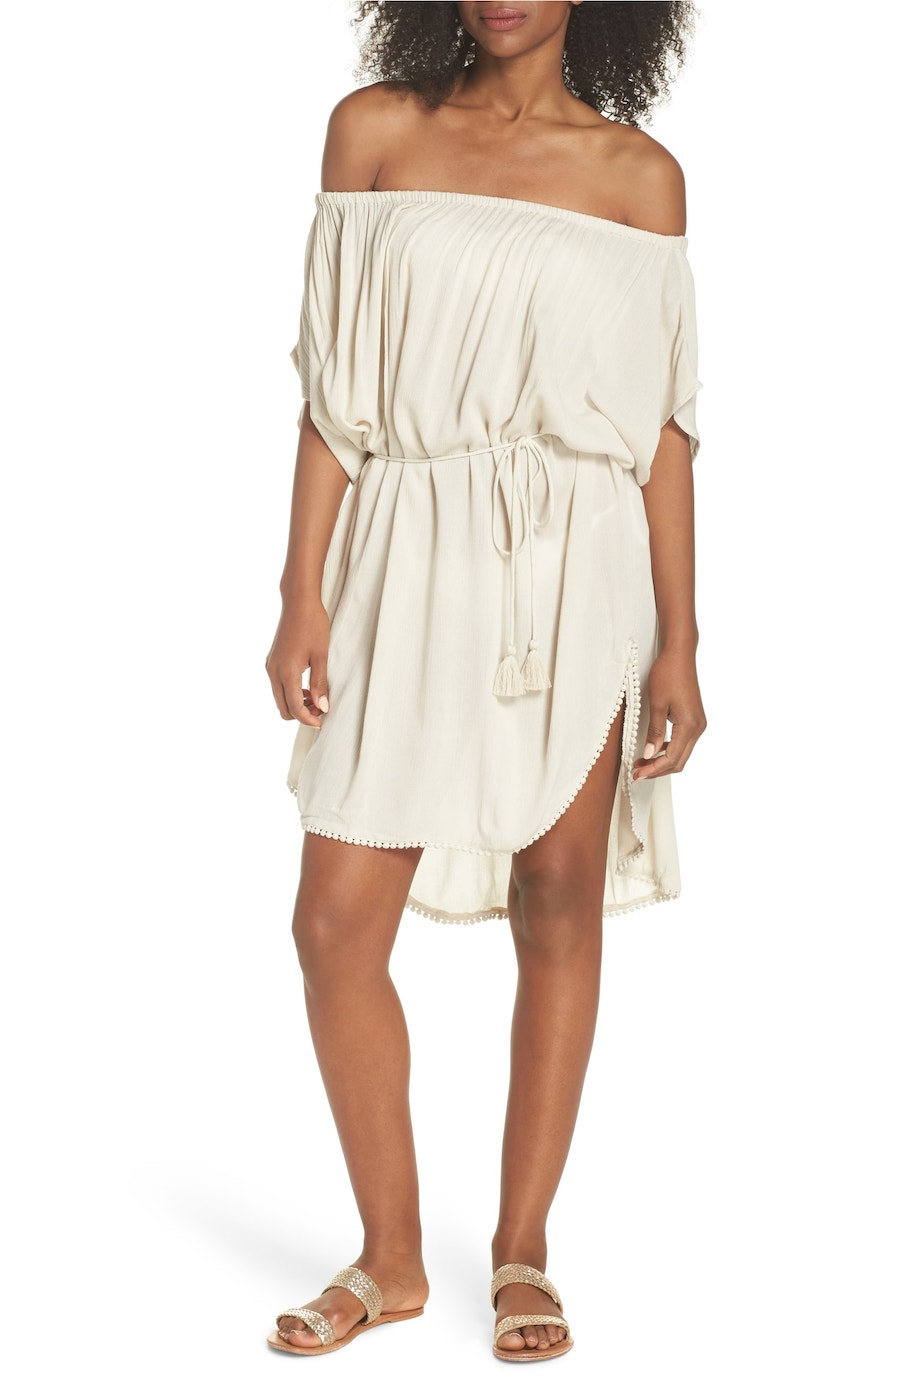 Cool pool coverups for moms: Seaside off-shoulder dress by Echo